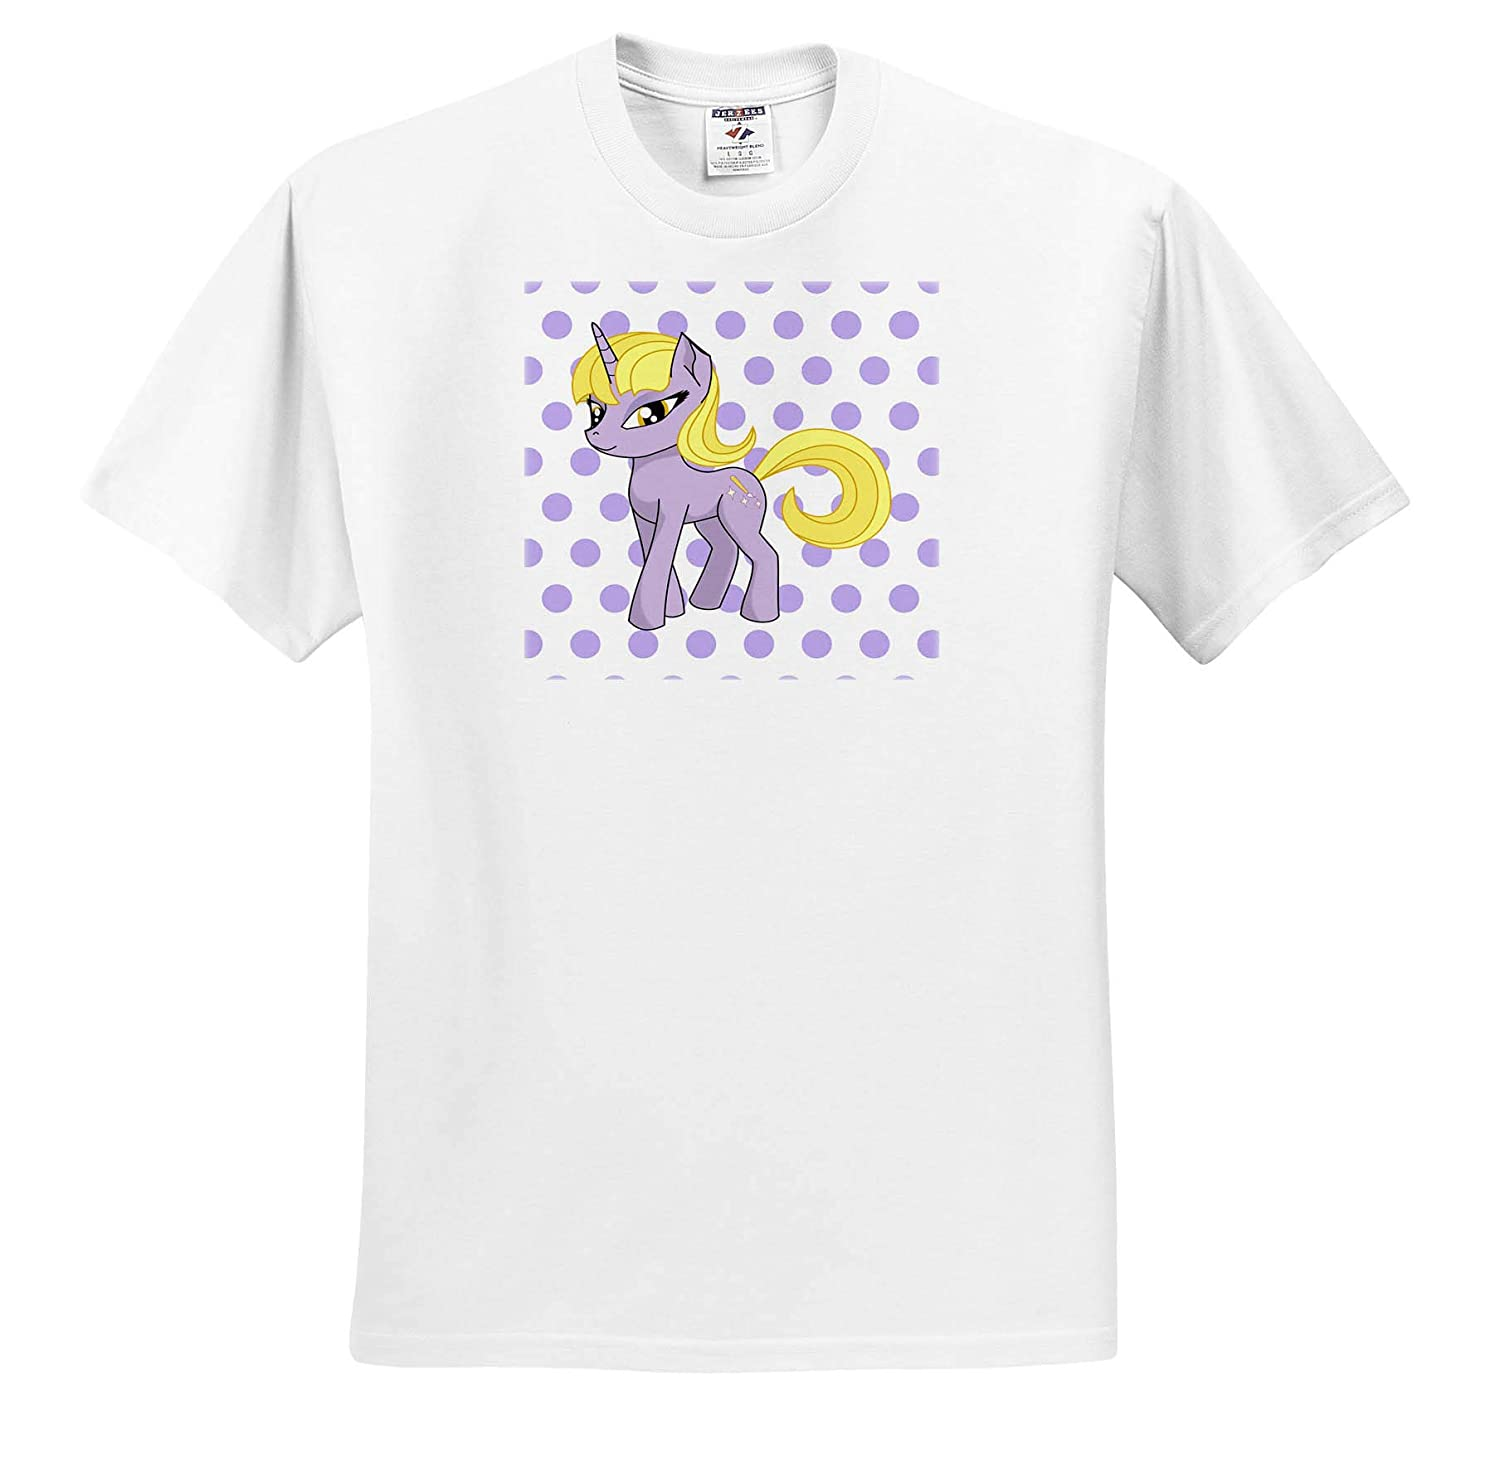 Childrens Art V T-Shirts Image of Violet and Yellow Unicorn On Violet Dots 3dRose Lens Art by Florene